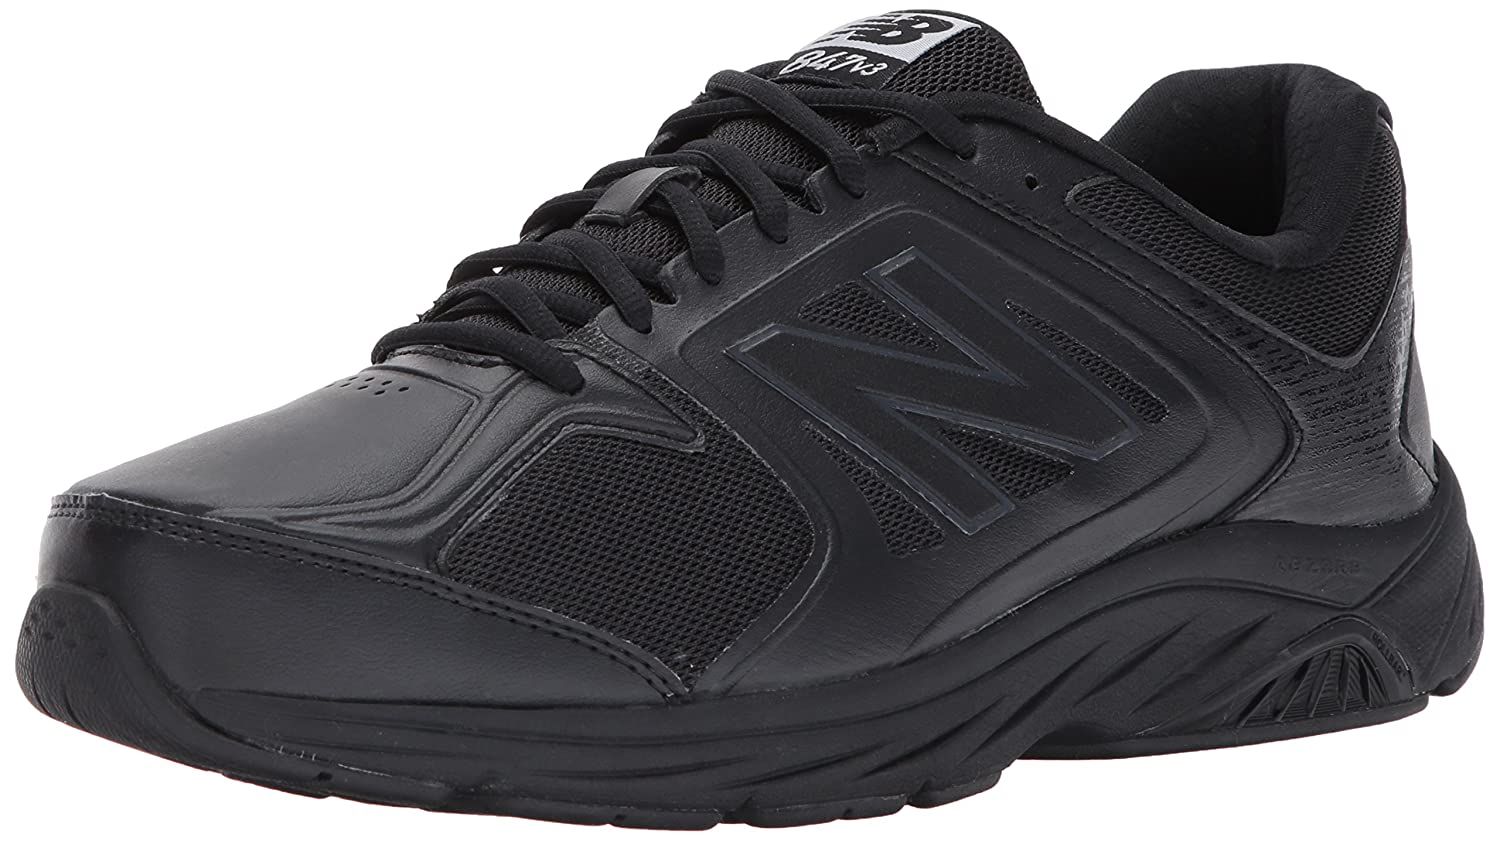 New Balance Men's 847V3 Walking Shoe 10 B US|Black/Black